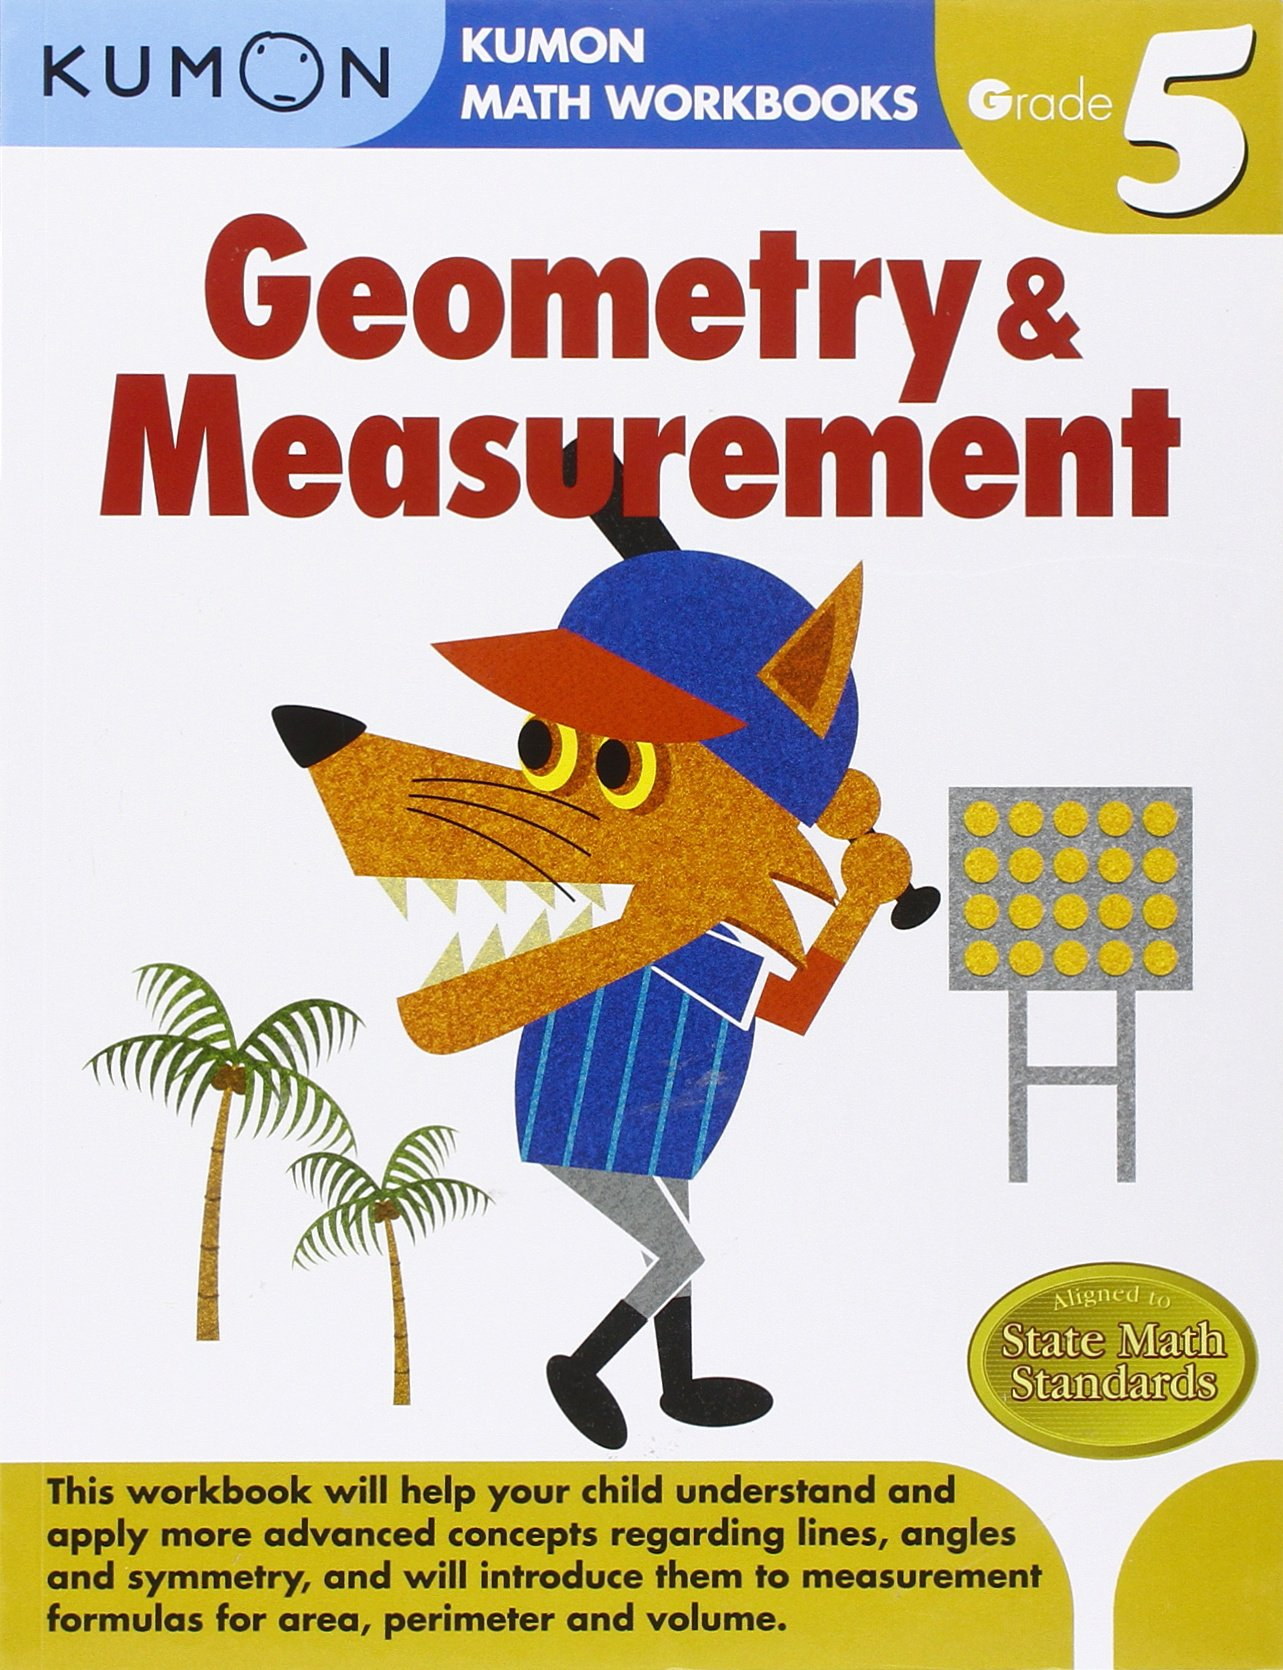 Geometry & Measurement Kumon Math Workbooks Grade 5 Kumon